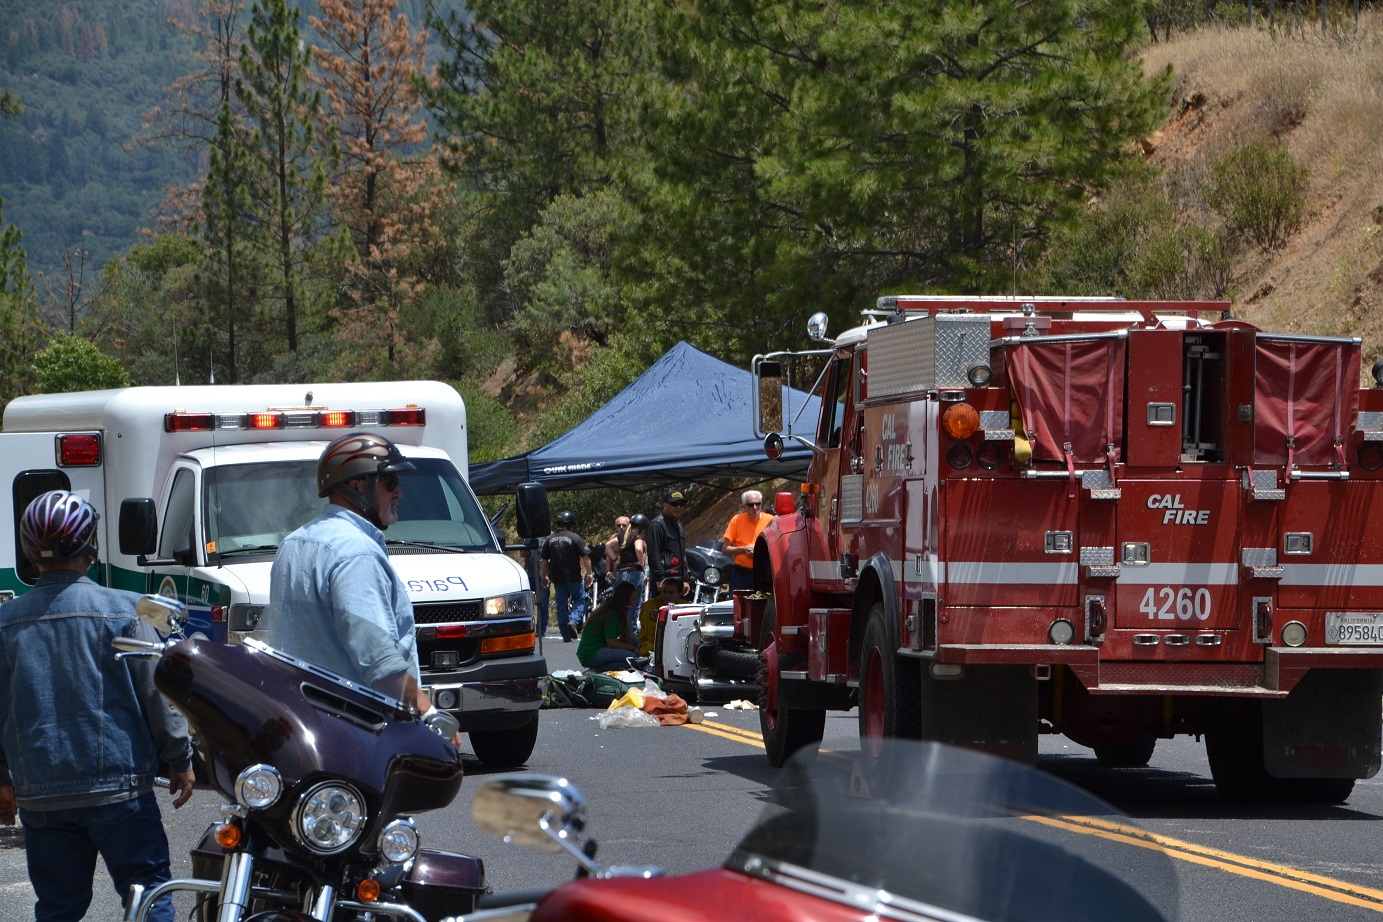 Ambulance and engine at motorcycle crash